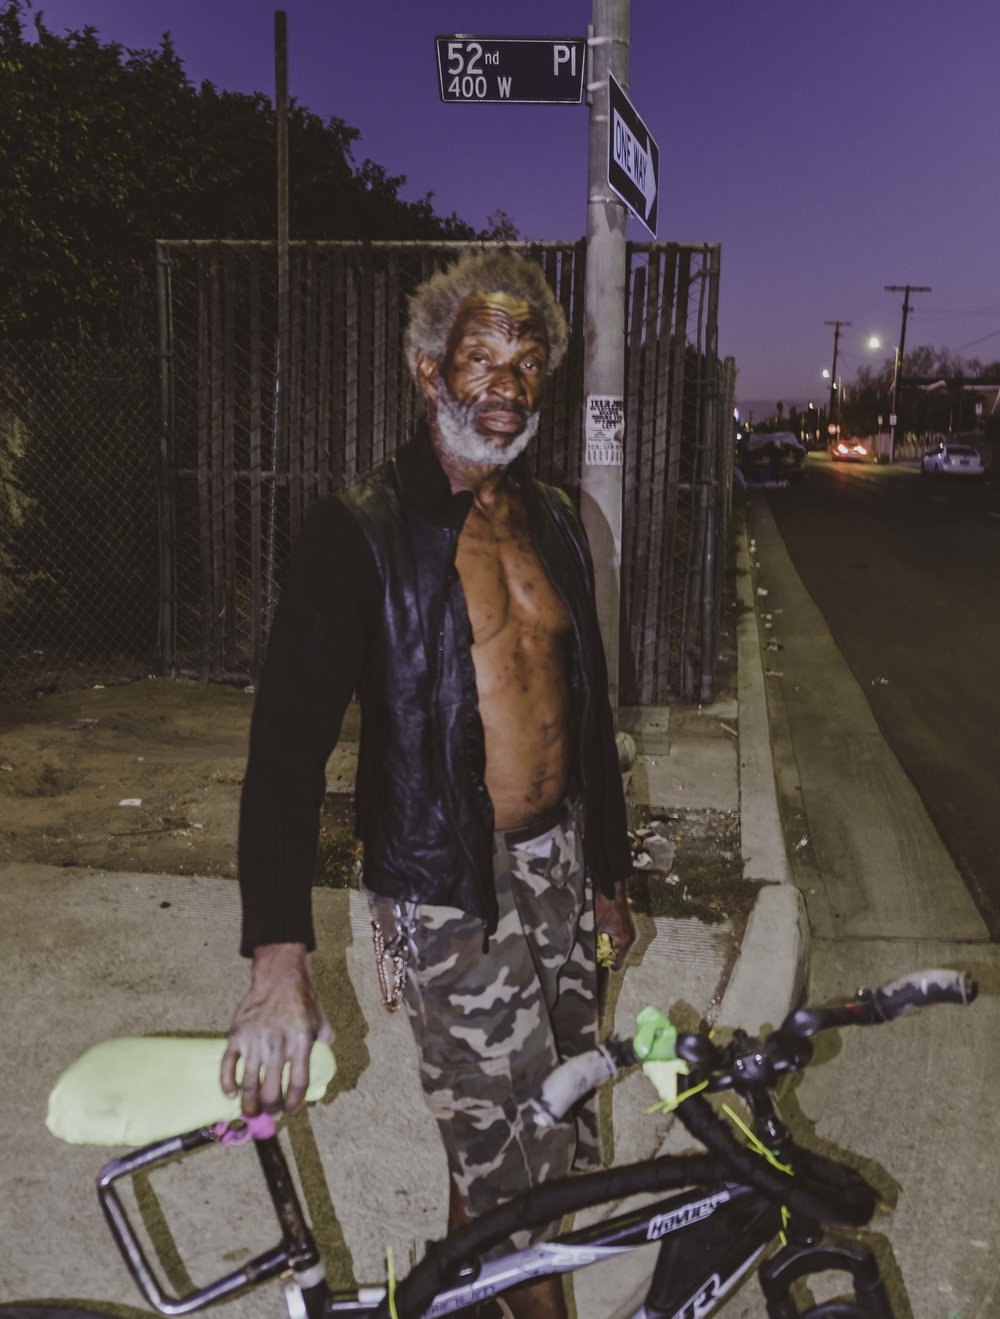 Andre Green - The Custom Bike Maker || on 52nd Pl. Los Angeles, CA November 14, 2016